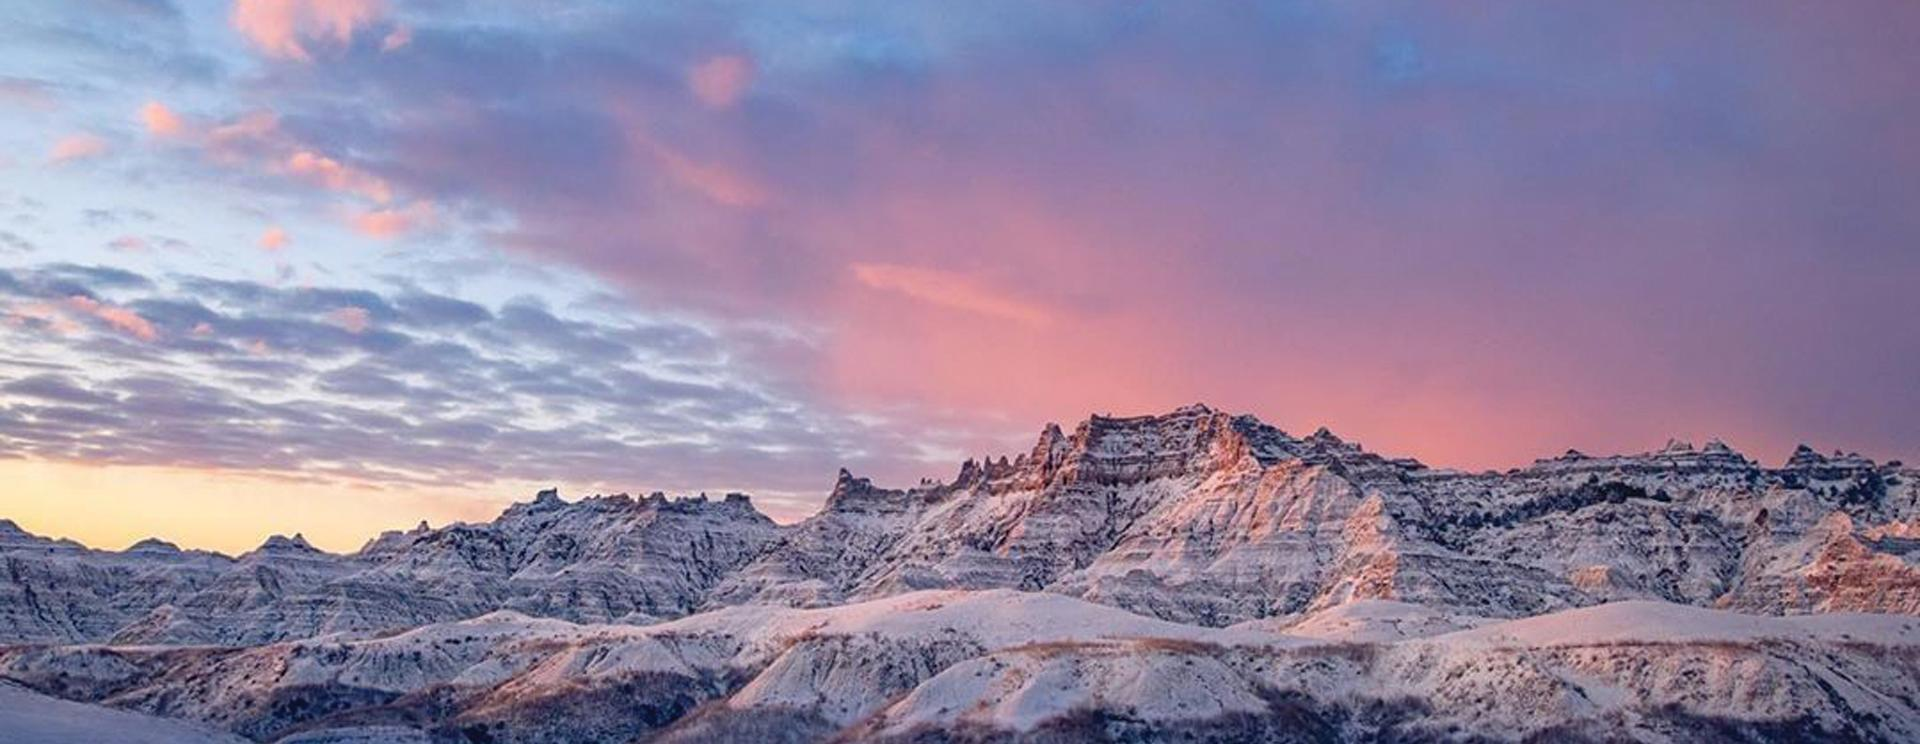 The 5 Most Remarkable Photos of the Black Hills and Badlands in January 2020